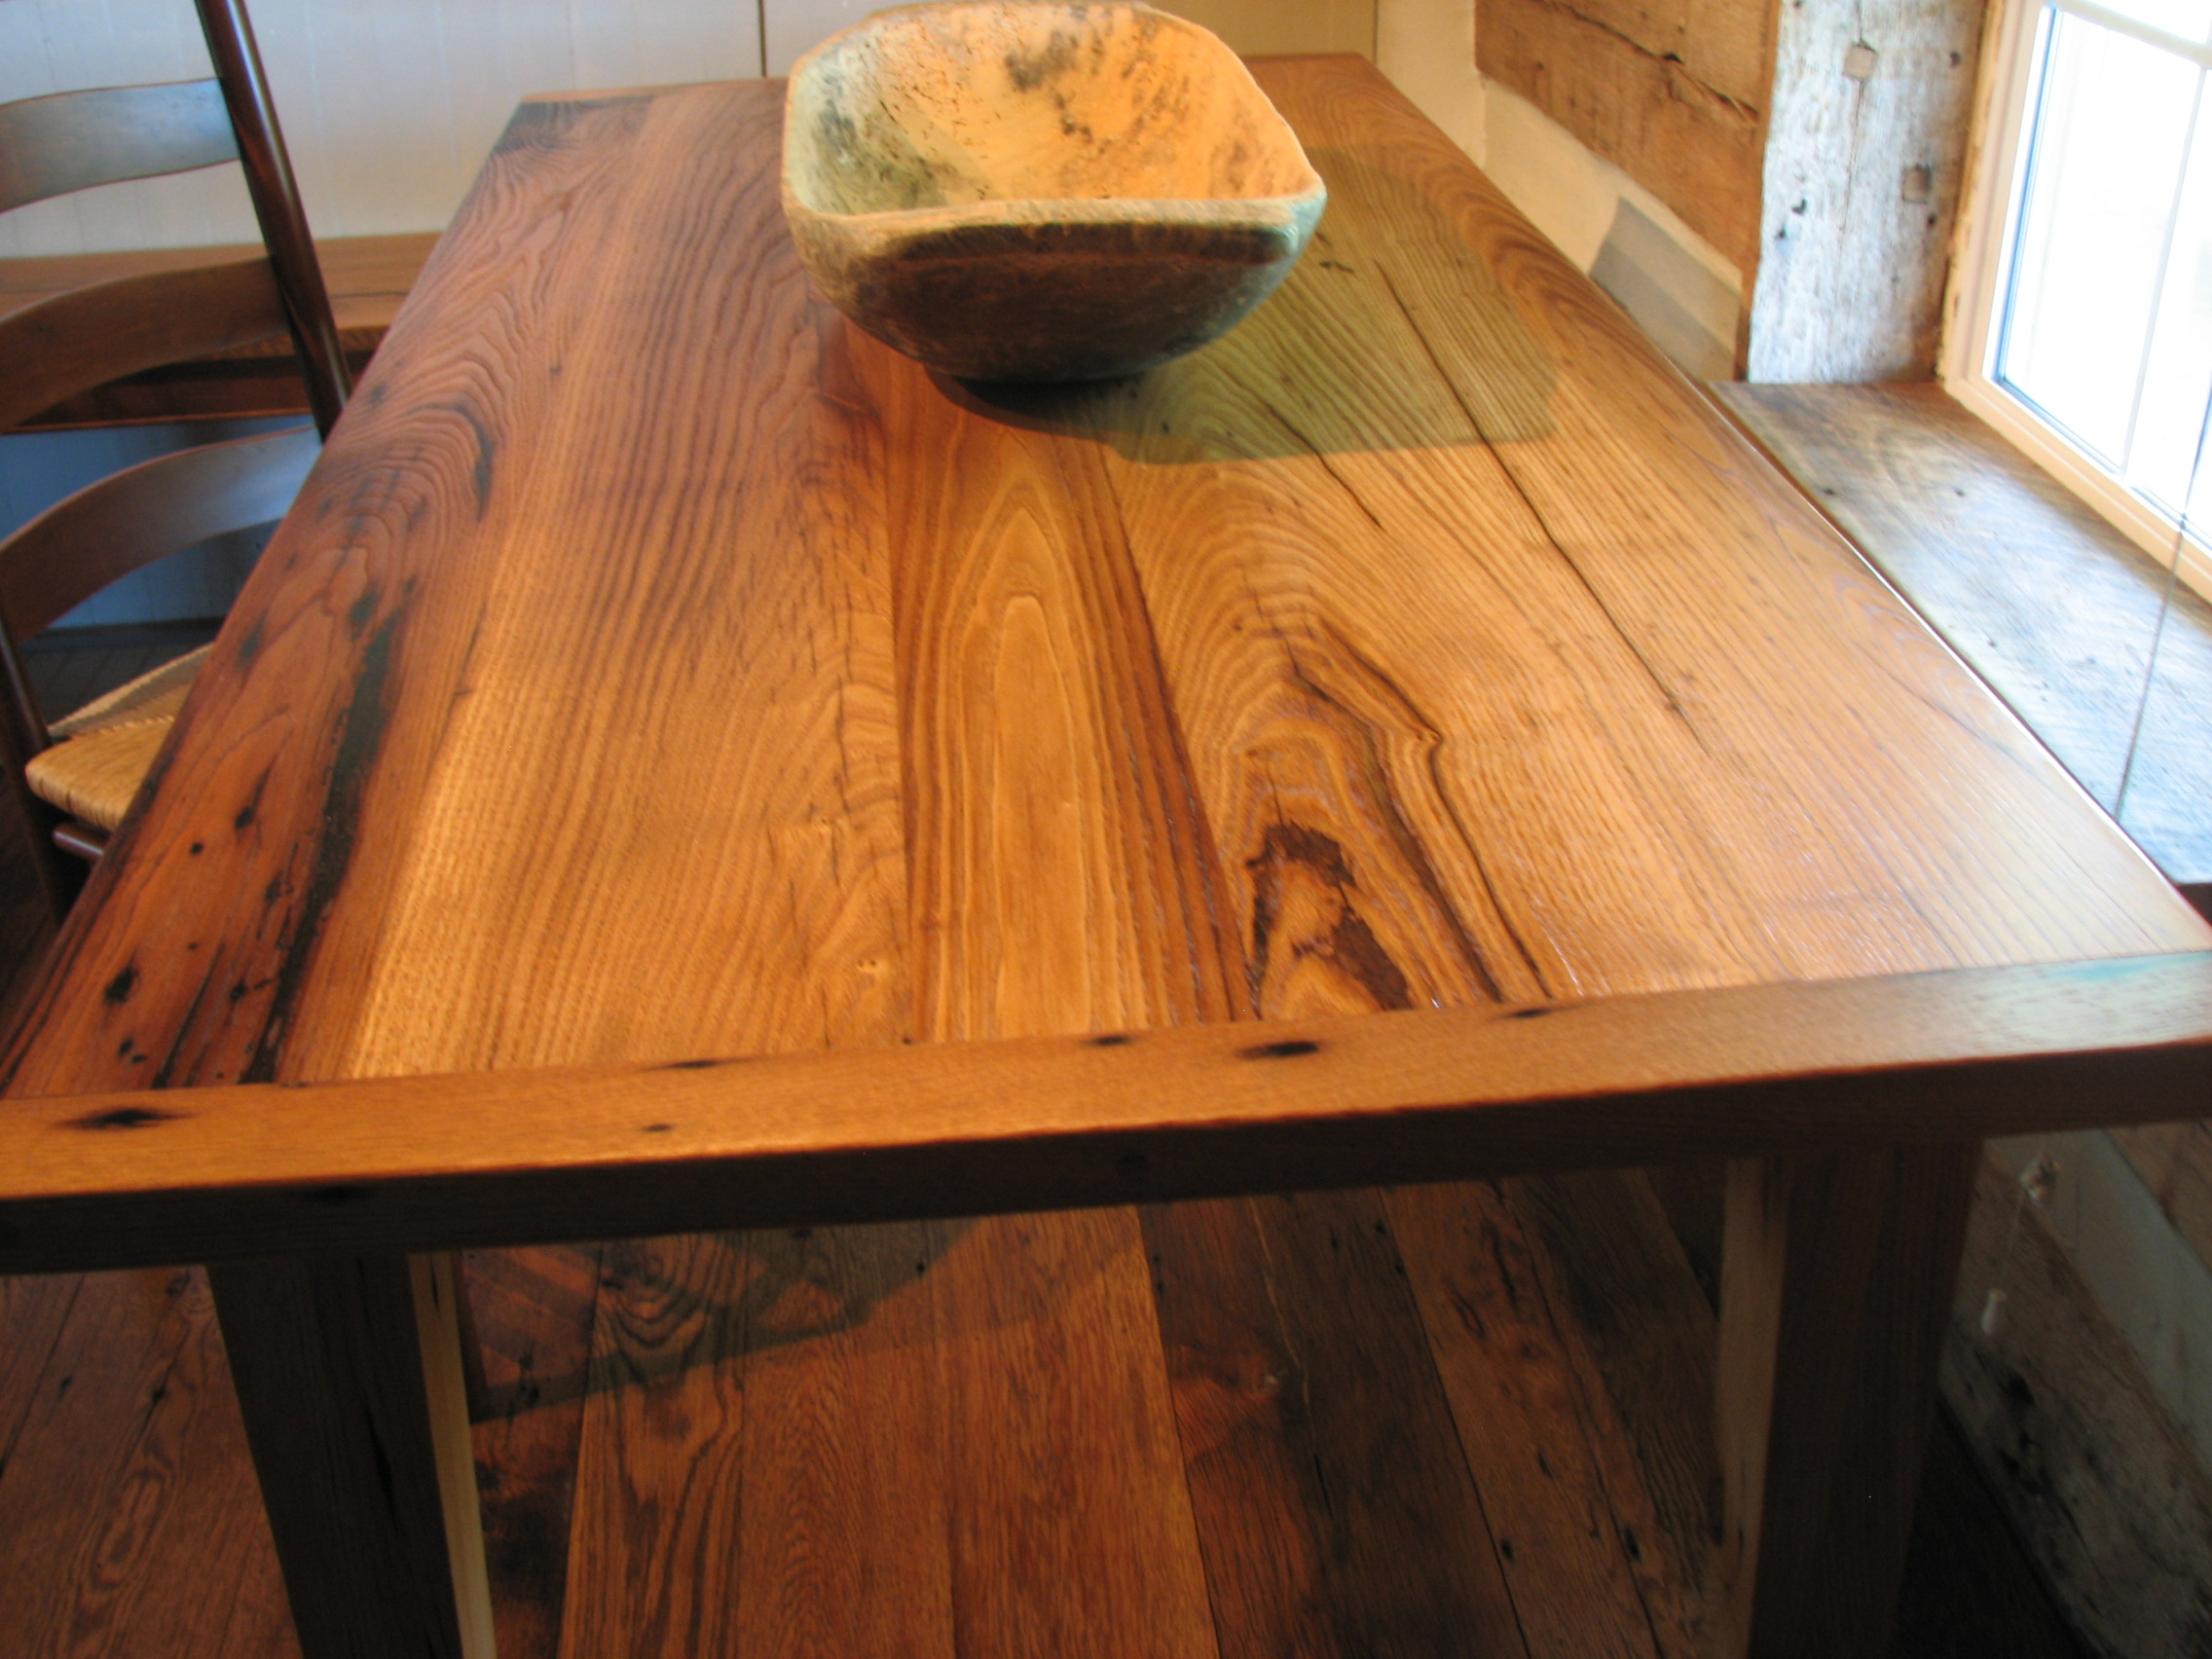 Beautiful Handcrafted Farm Tables   Made to Last. Reclaimed Wood Furniture   Fine furniture made from reclaimed